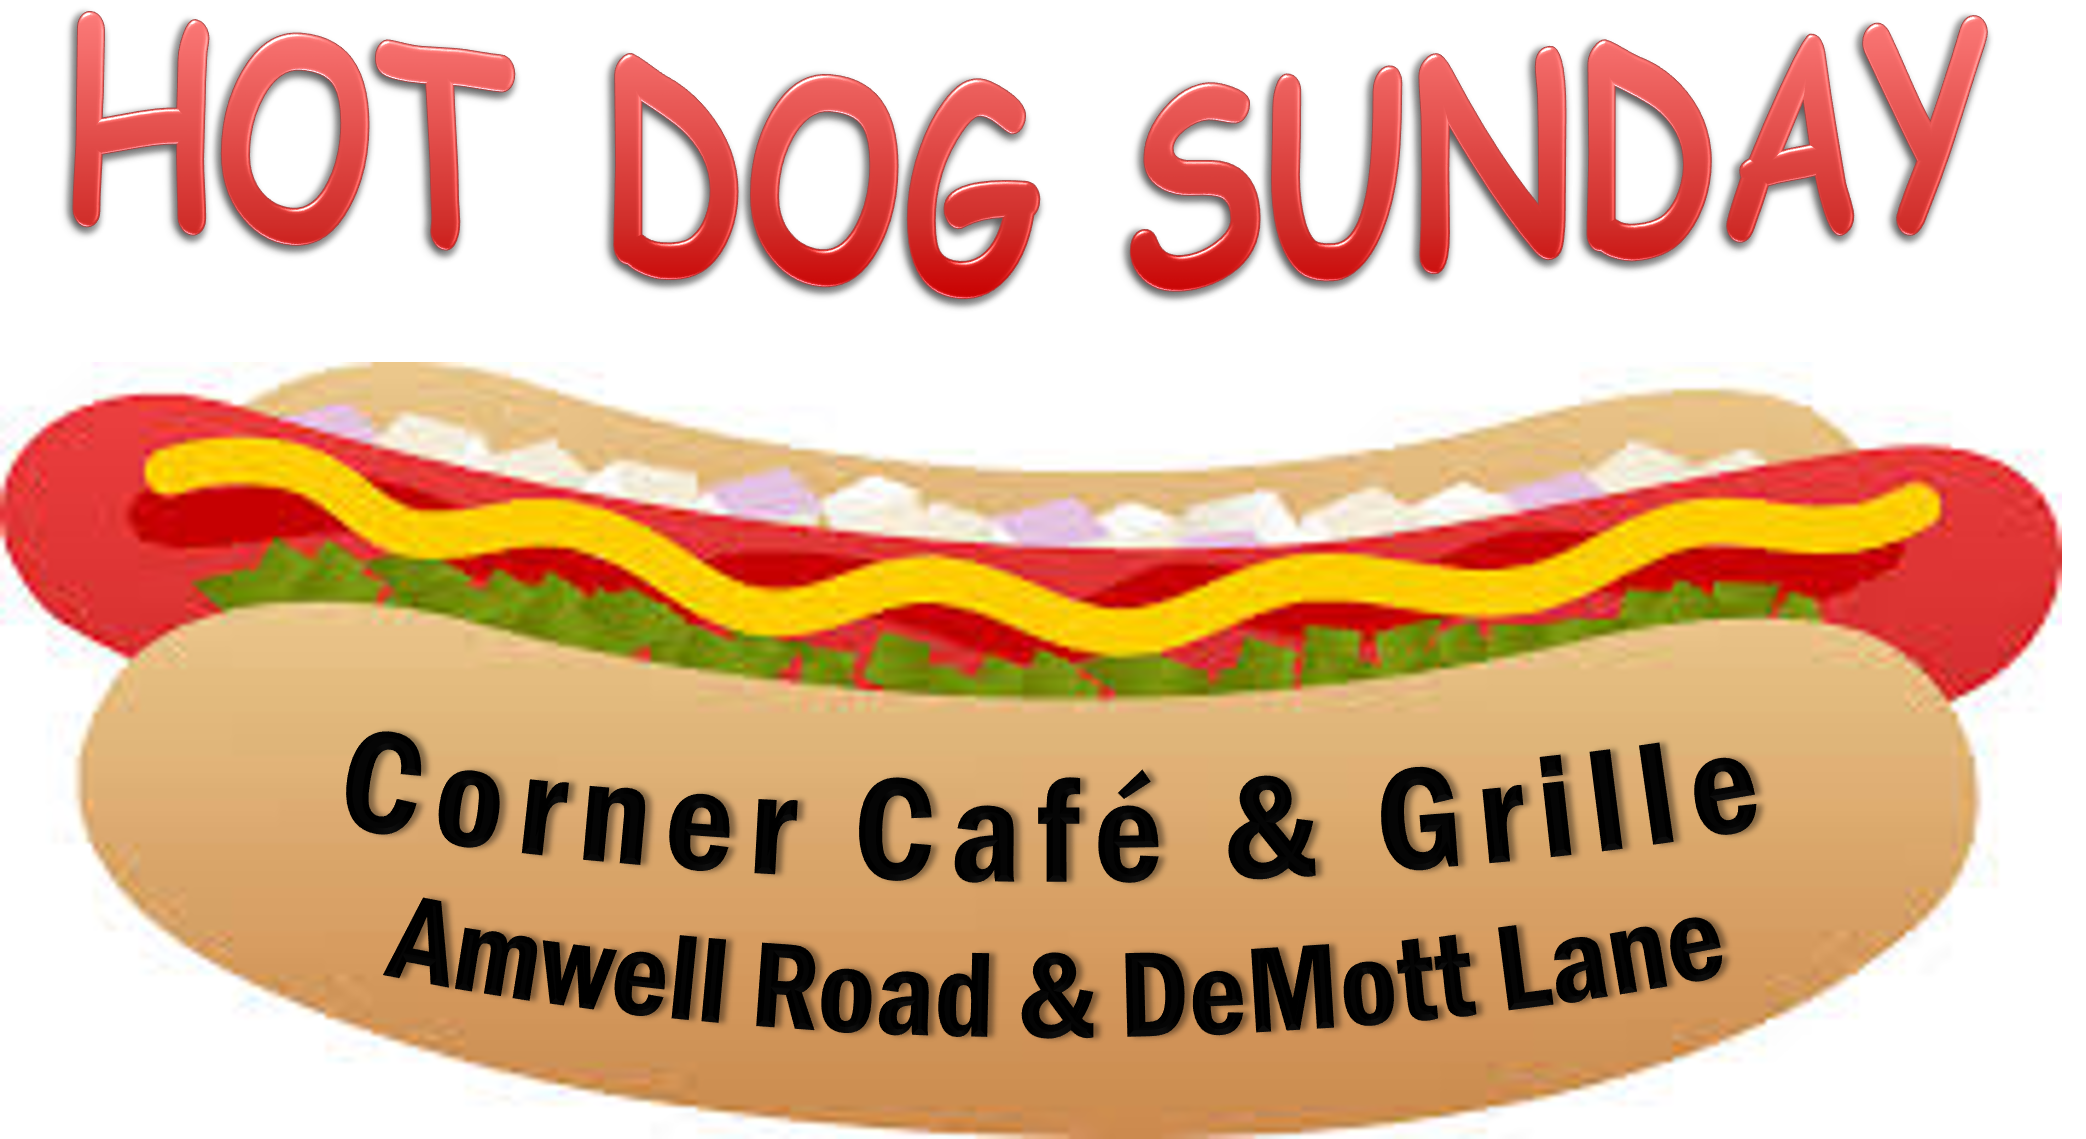 Hot Dog Sunday - October 8